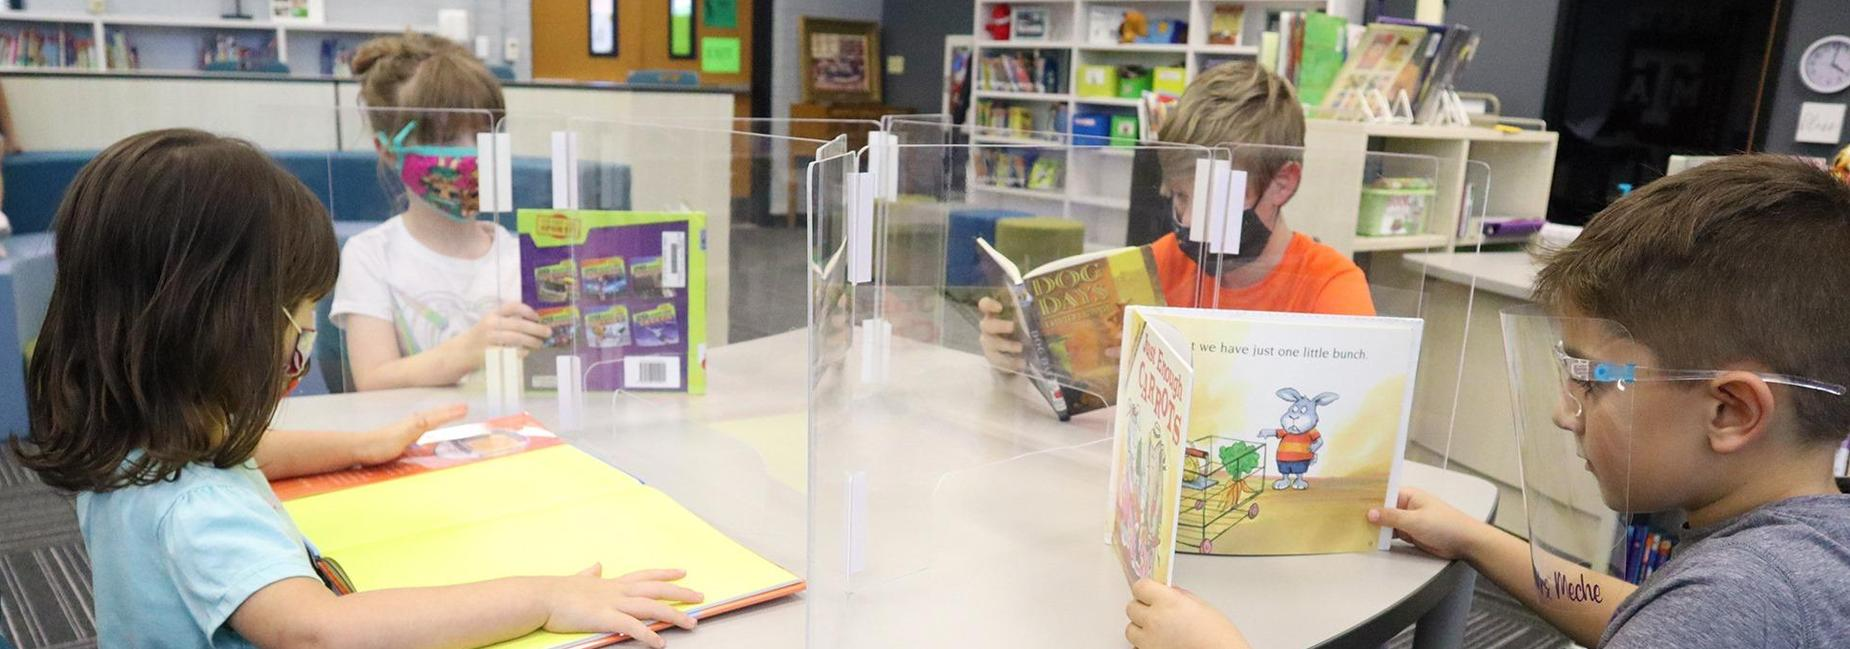 4 students reading, wearing face shields face each other  with plexiglass shields between them